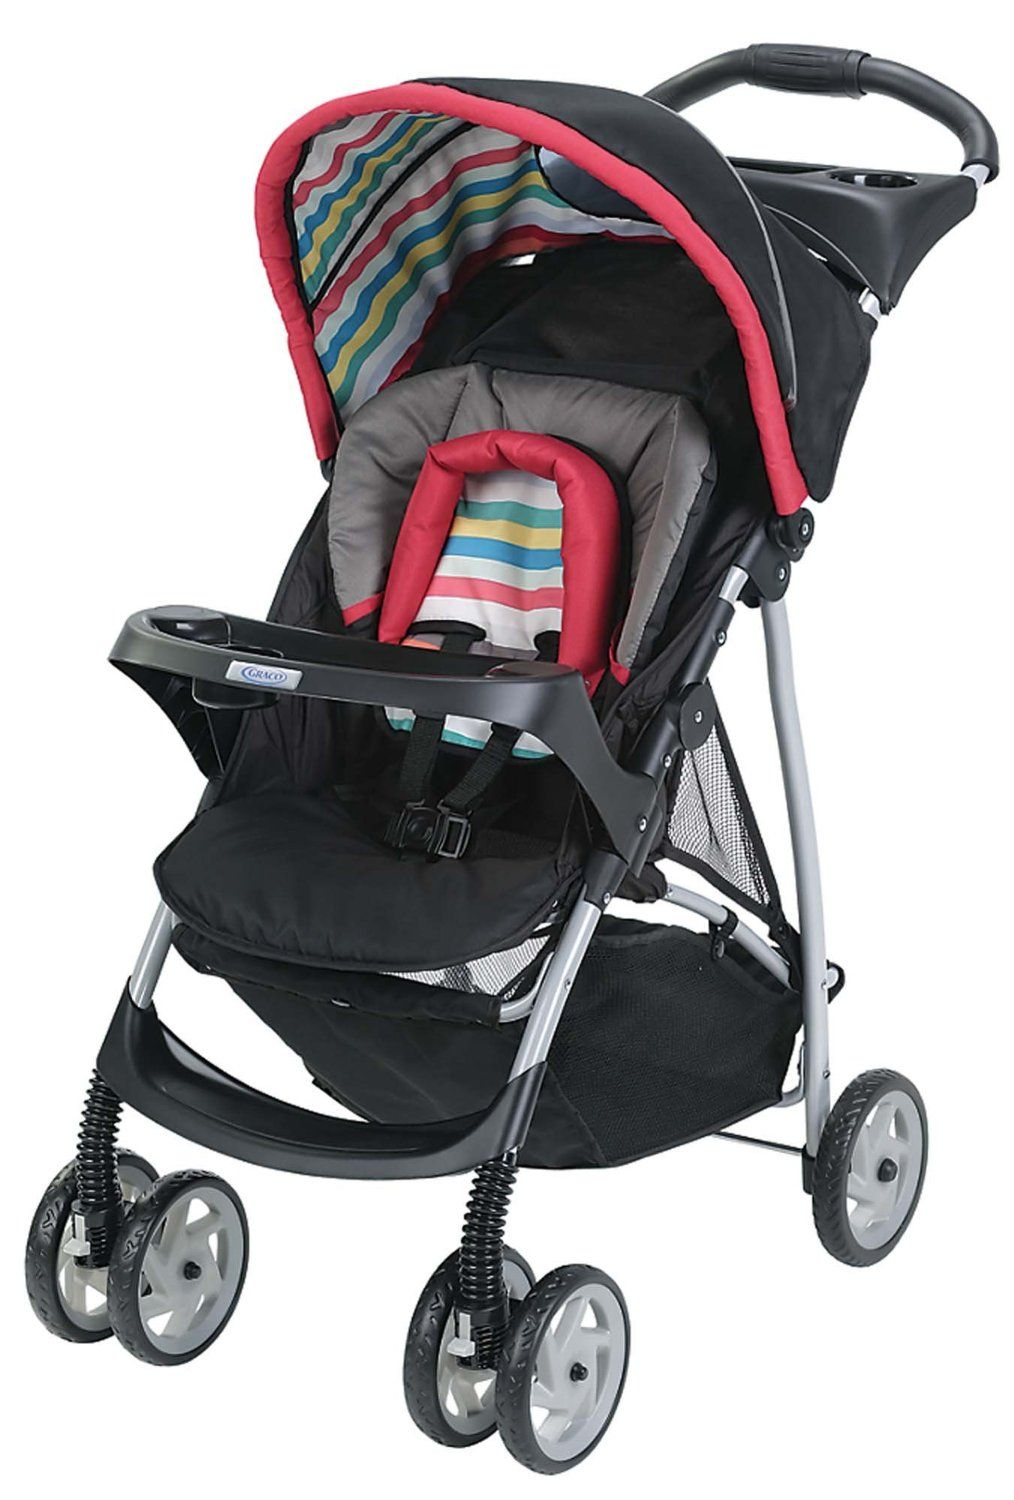 Top 10 Best Baby Strollers for Newborns Fantastic cheap